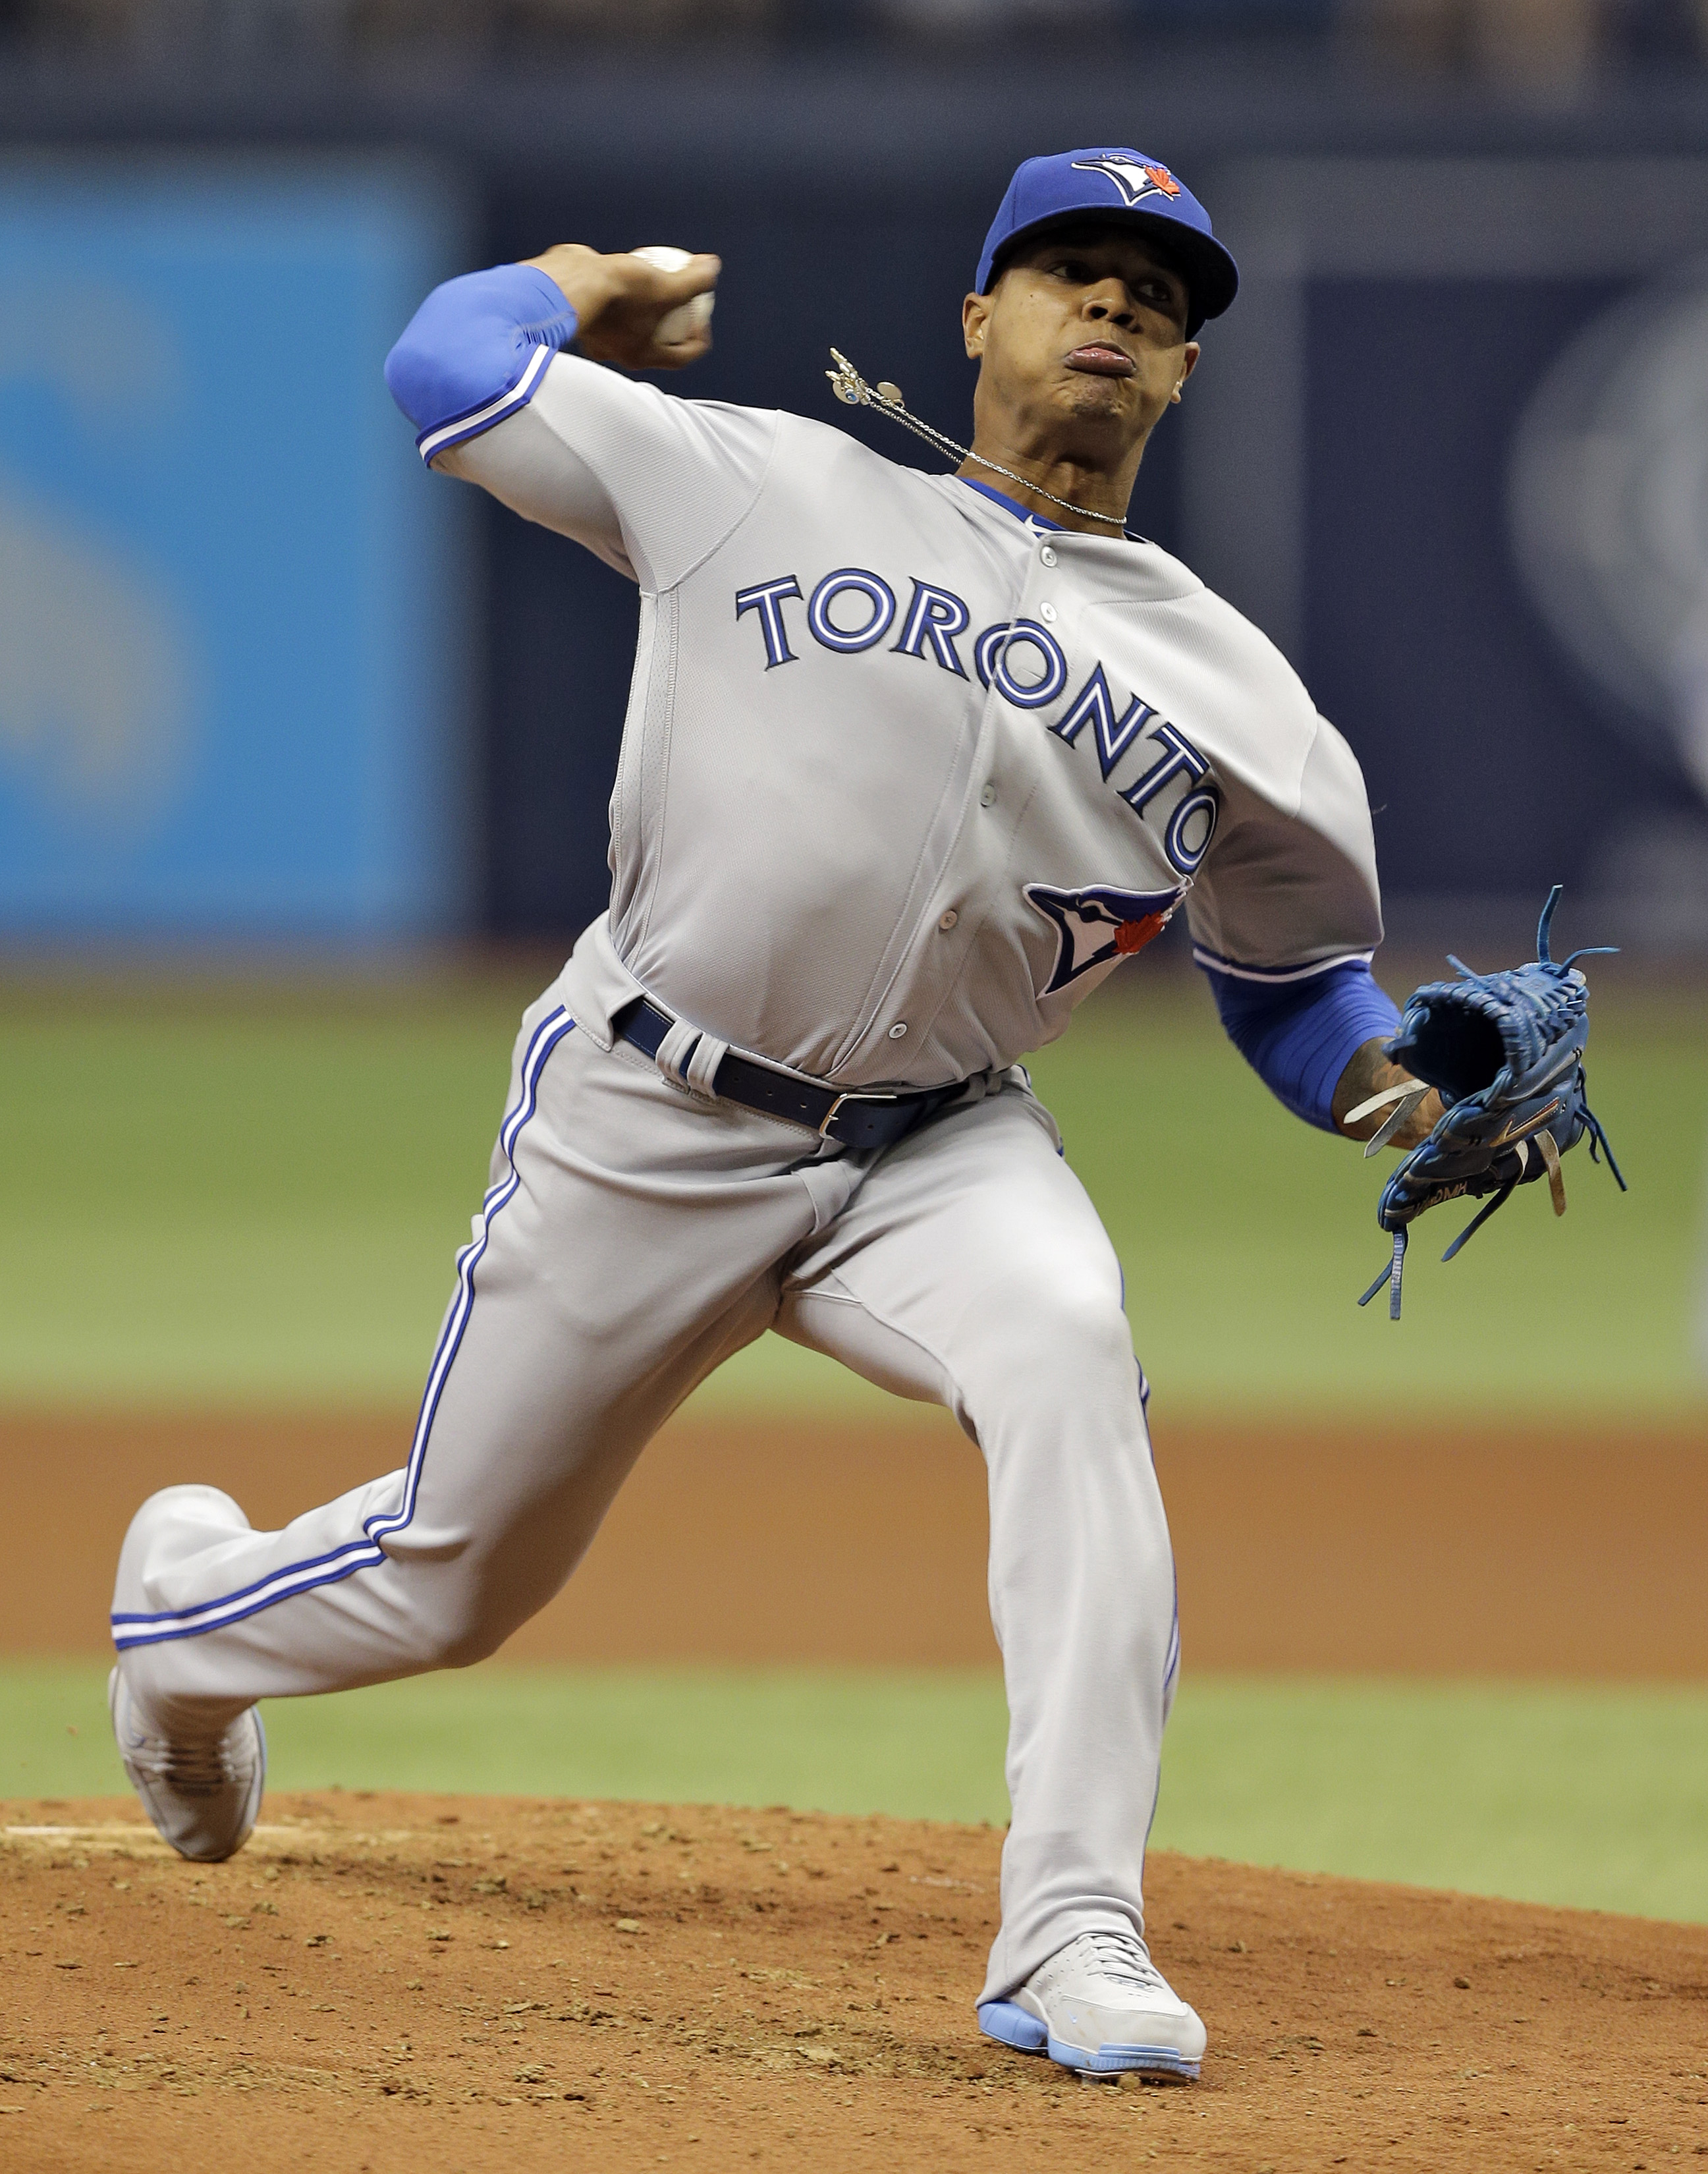 Toronto Blue Jays starting pitcher Marcus Stroman delivers to the Tampa Bay Rays during the first inning of a baseball game Sunday, April 3, 2016, in St. Petersburg, Fla. (AP Photo/Chris O'Meara)